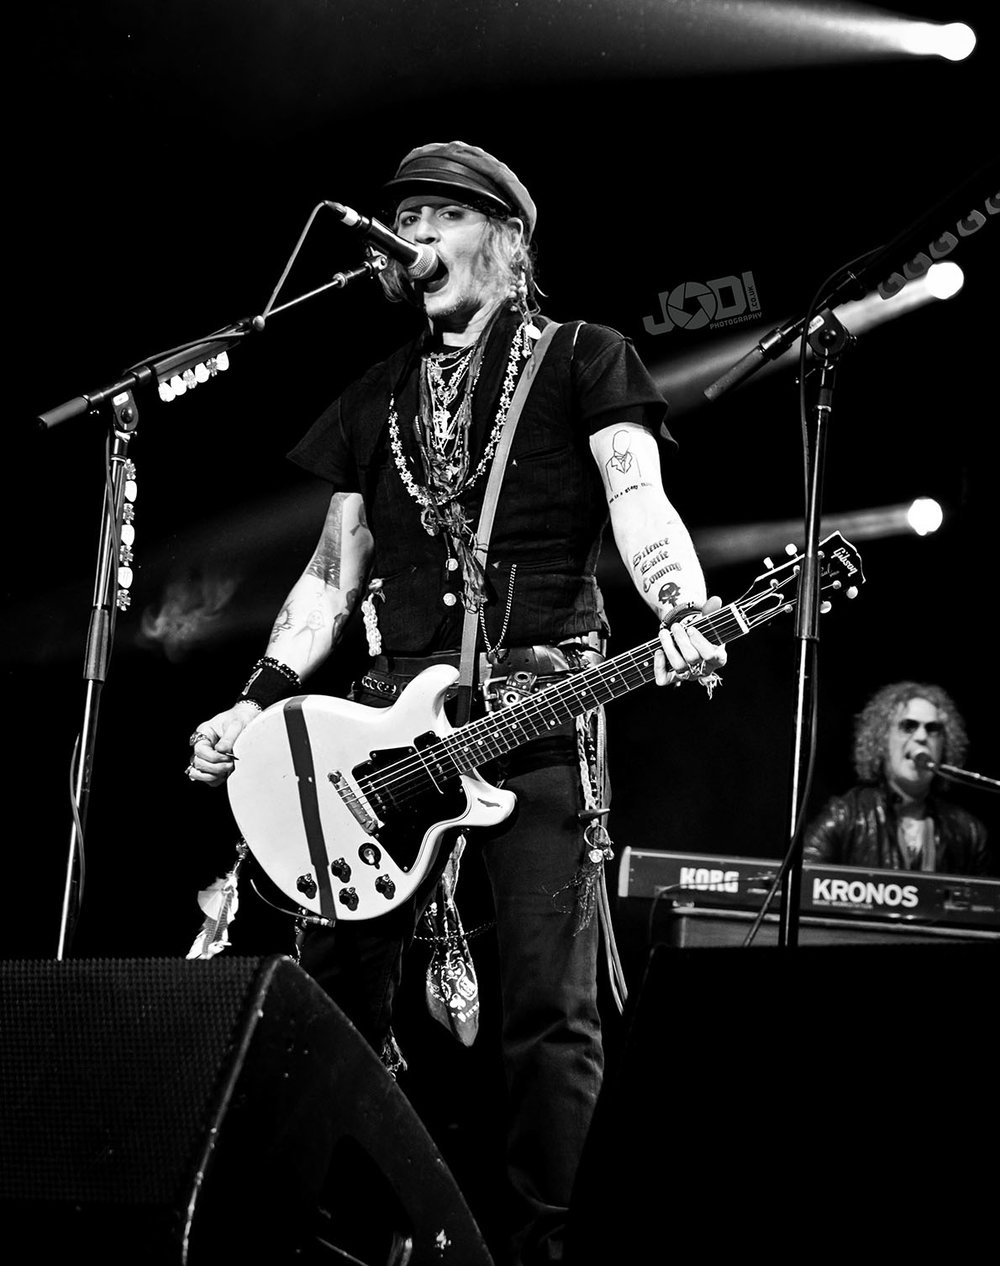 Hollywood Vampires at Birmingham Genting Arena by jodiphotography 26.jpg